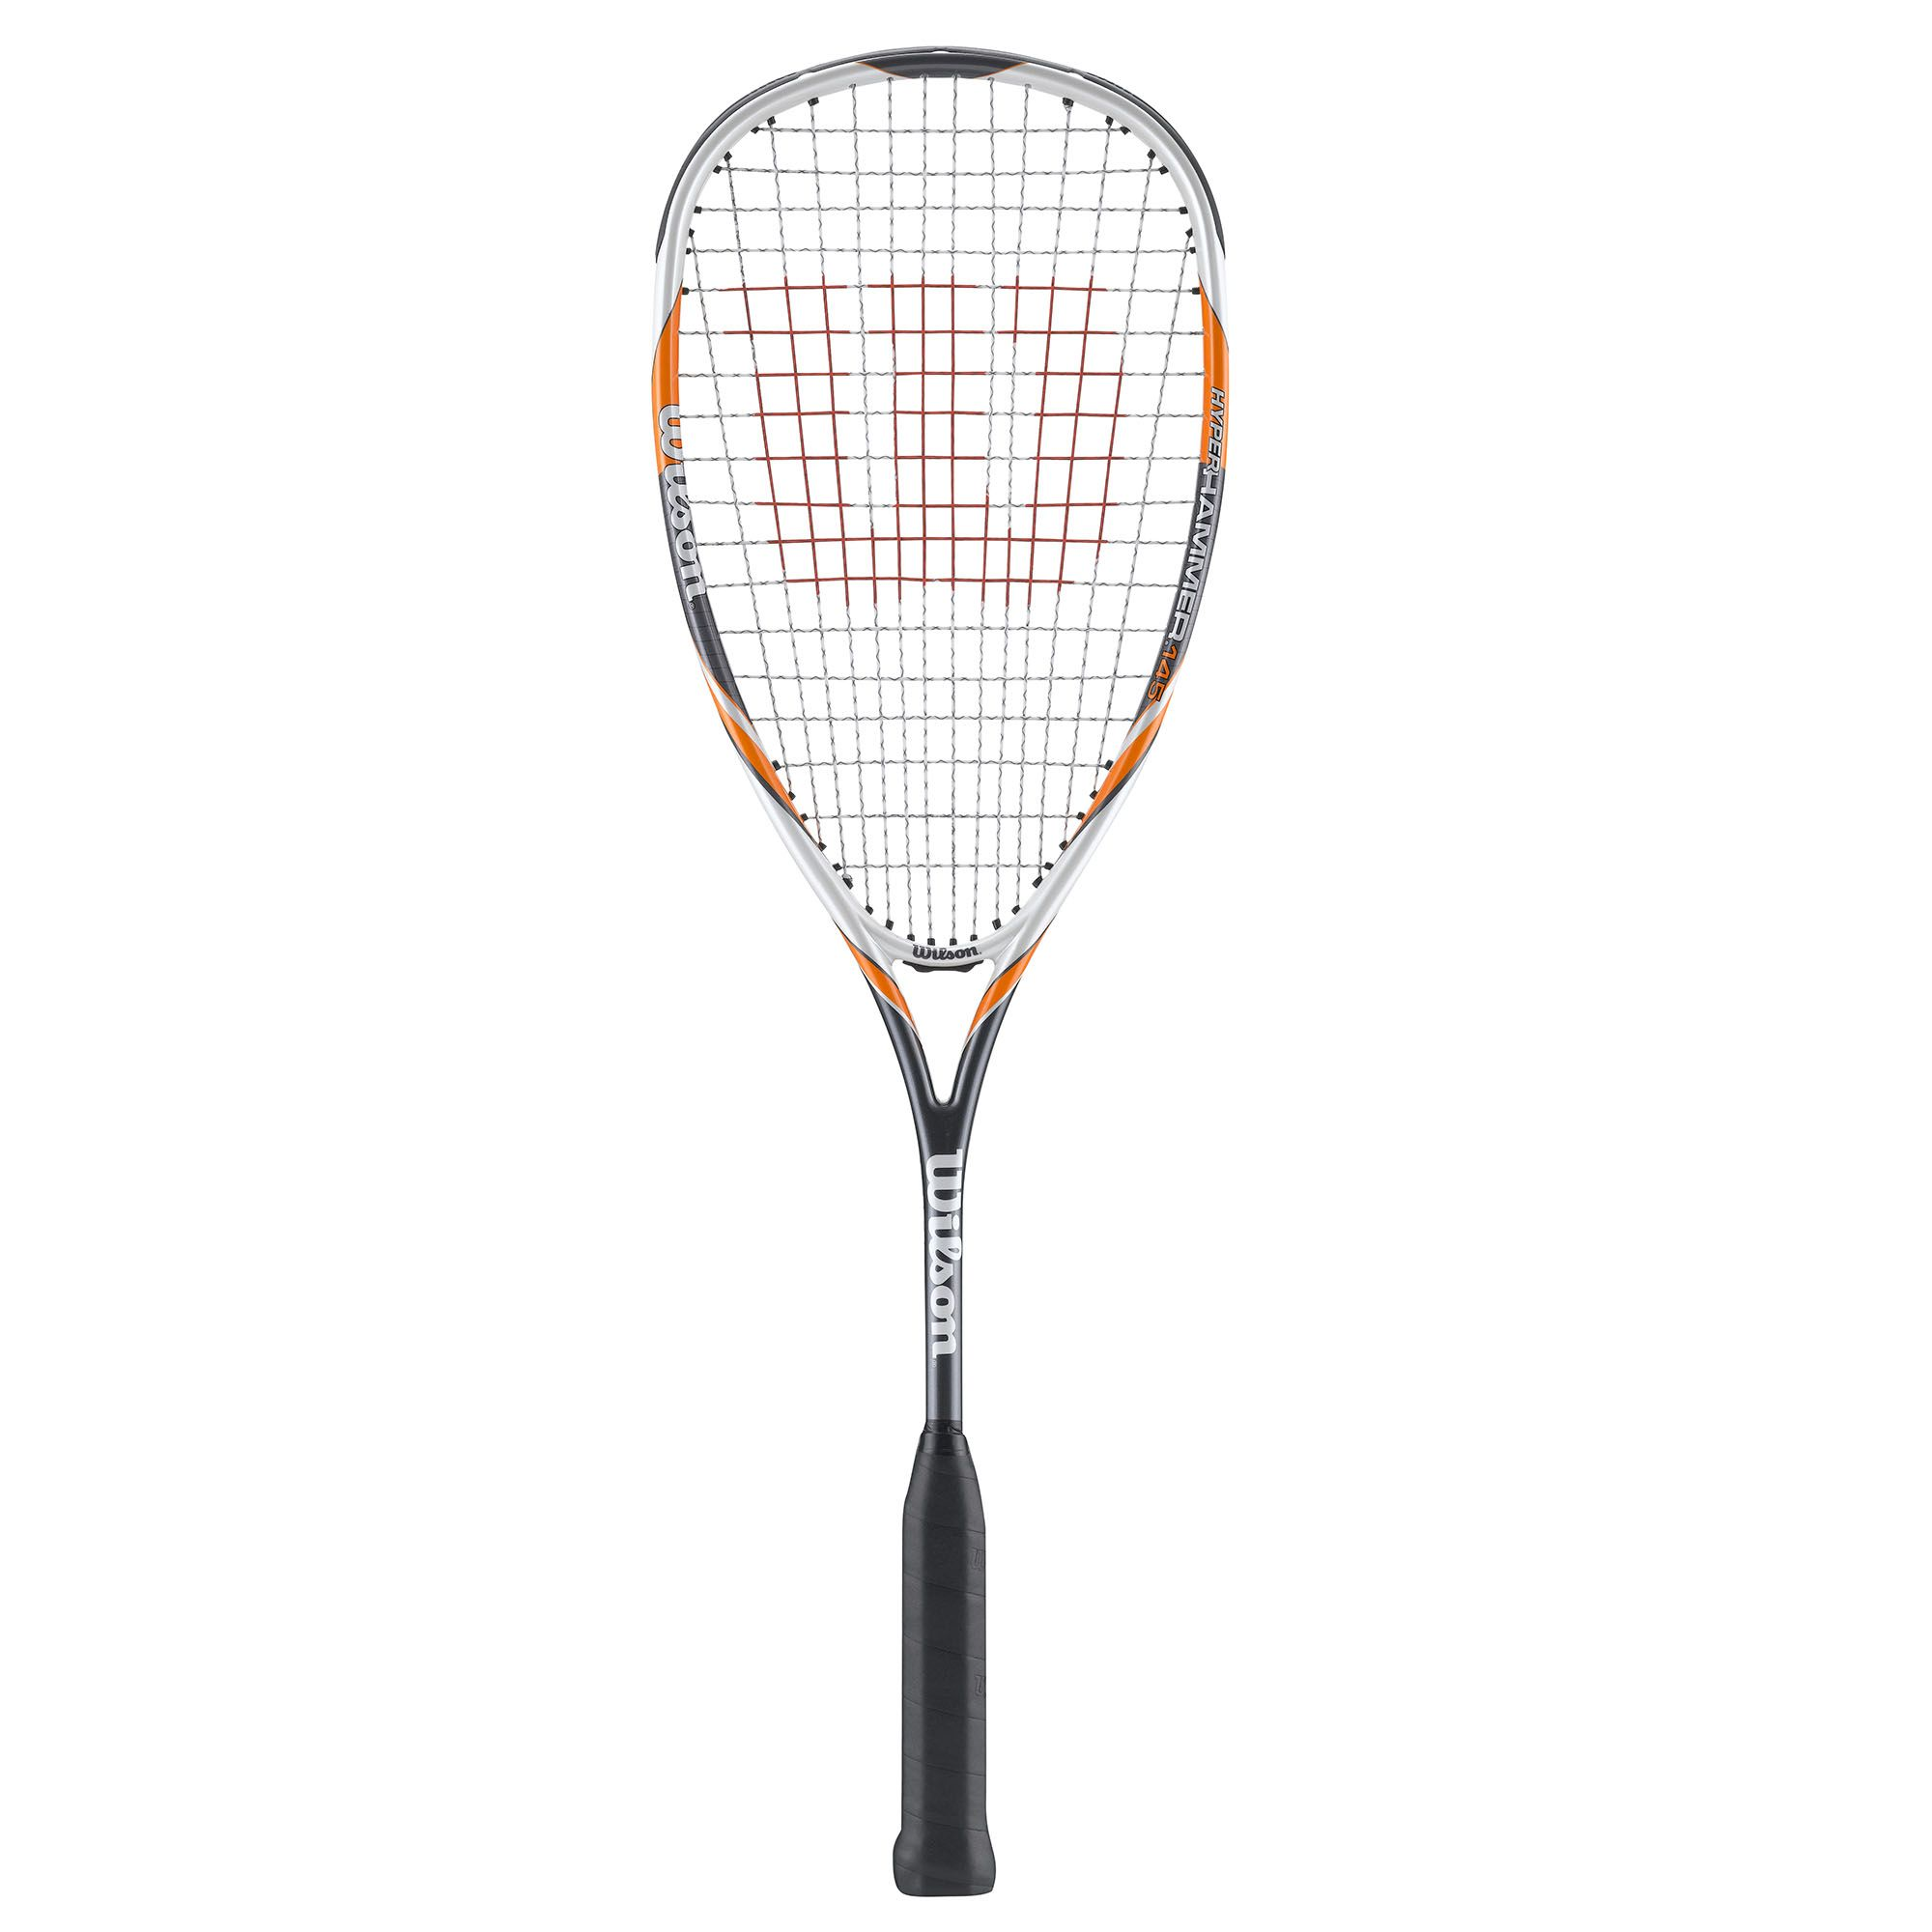 Voyage En Train Banc 12209 as well Merida Mission Carbon Team D 2007 besides Wilson Hyper Hammer 145 Squash Racket together with GIA 2 88ct H VS2 Estate as well BR 710 Big Ride Disc 26 Felge P42990. on 42990